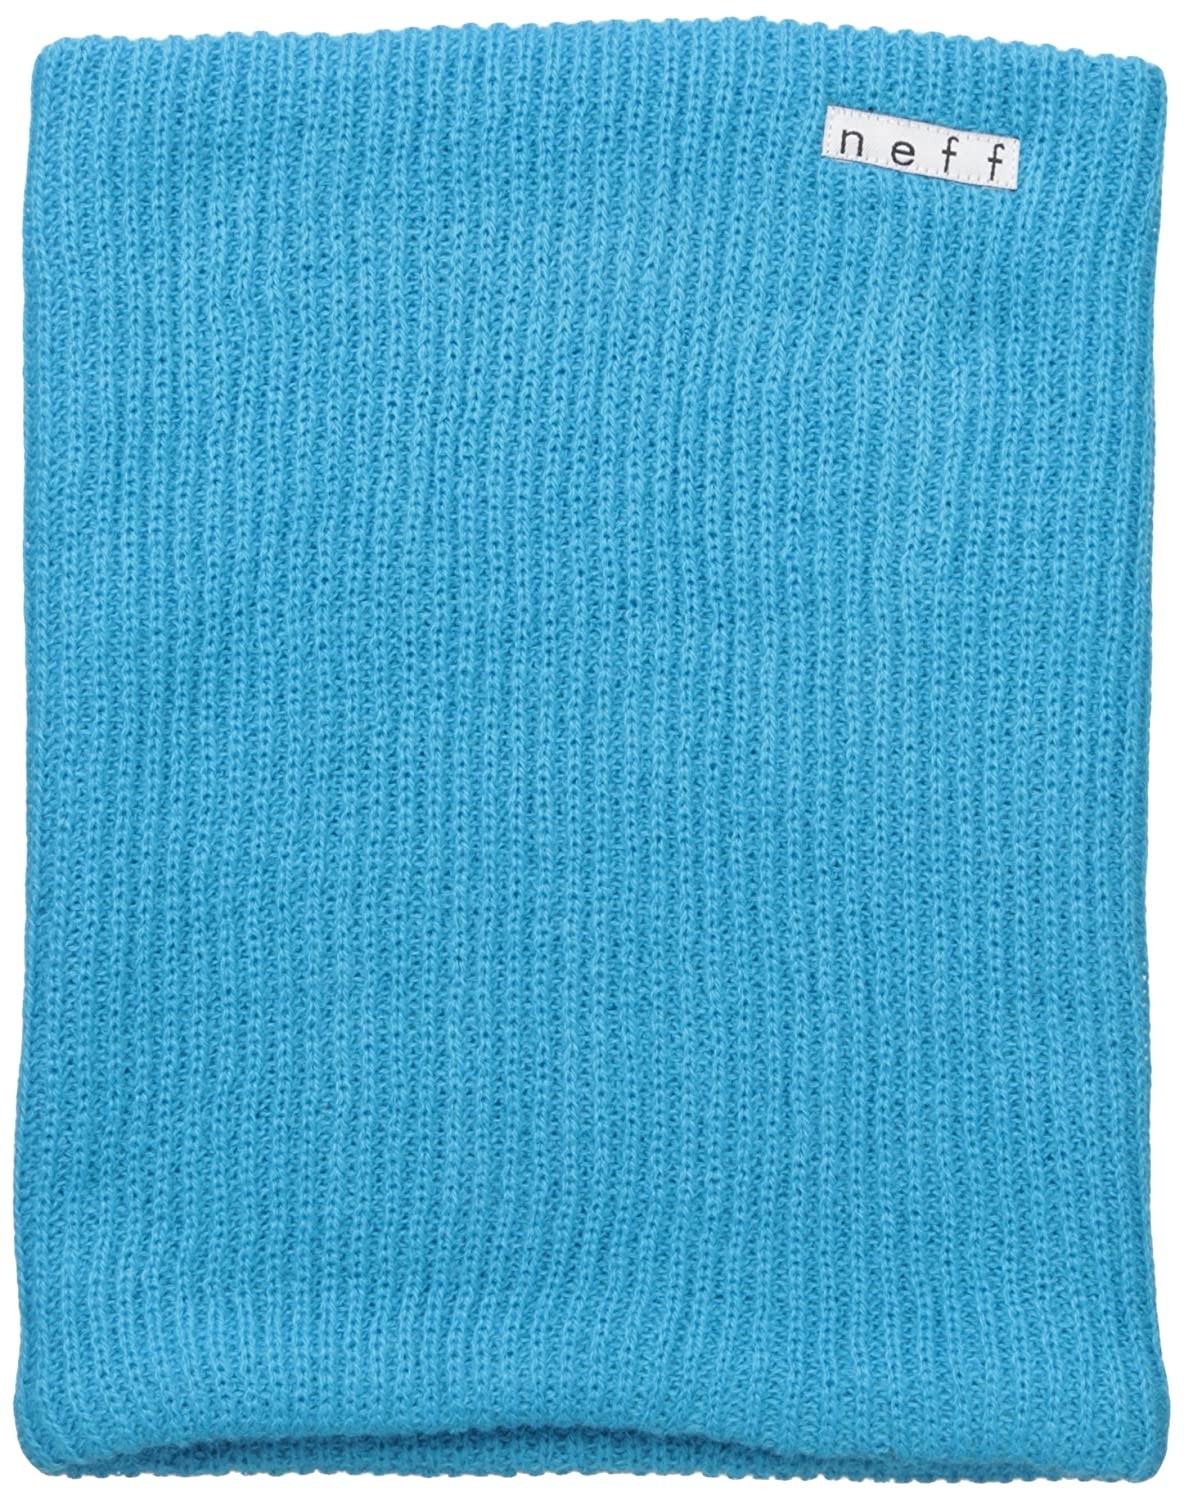 neff Men's Daily Gaiter neff Men' s Daily Gaiter Cyan One Size Neff Young Men' s